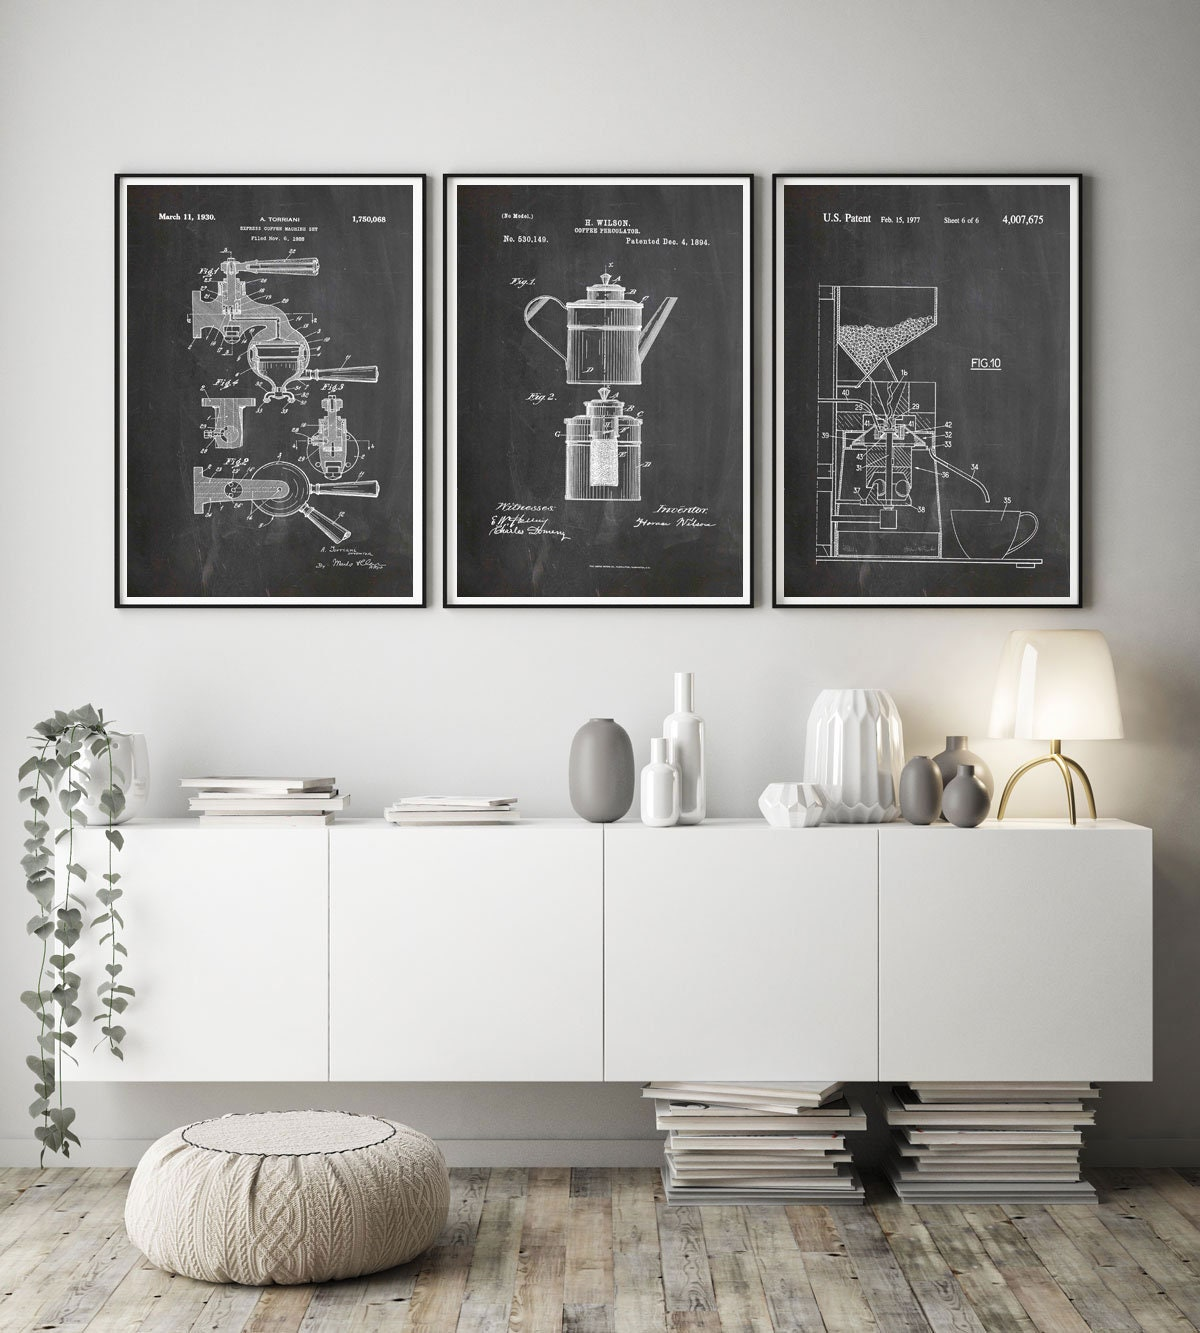 Coffee Decor Cafe Wall Art Coffee Patent Prints Coffee Percolator Coffee Machine Coffee Art Coffee Shop Art Coffee Shop Decor Wb261 262 263